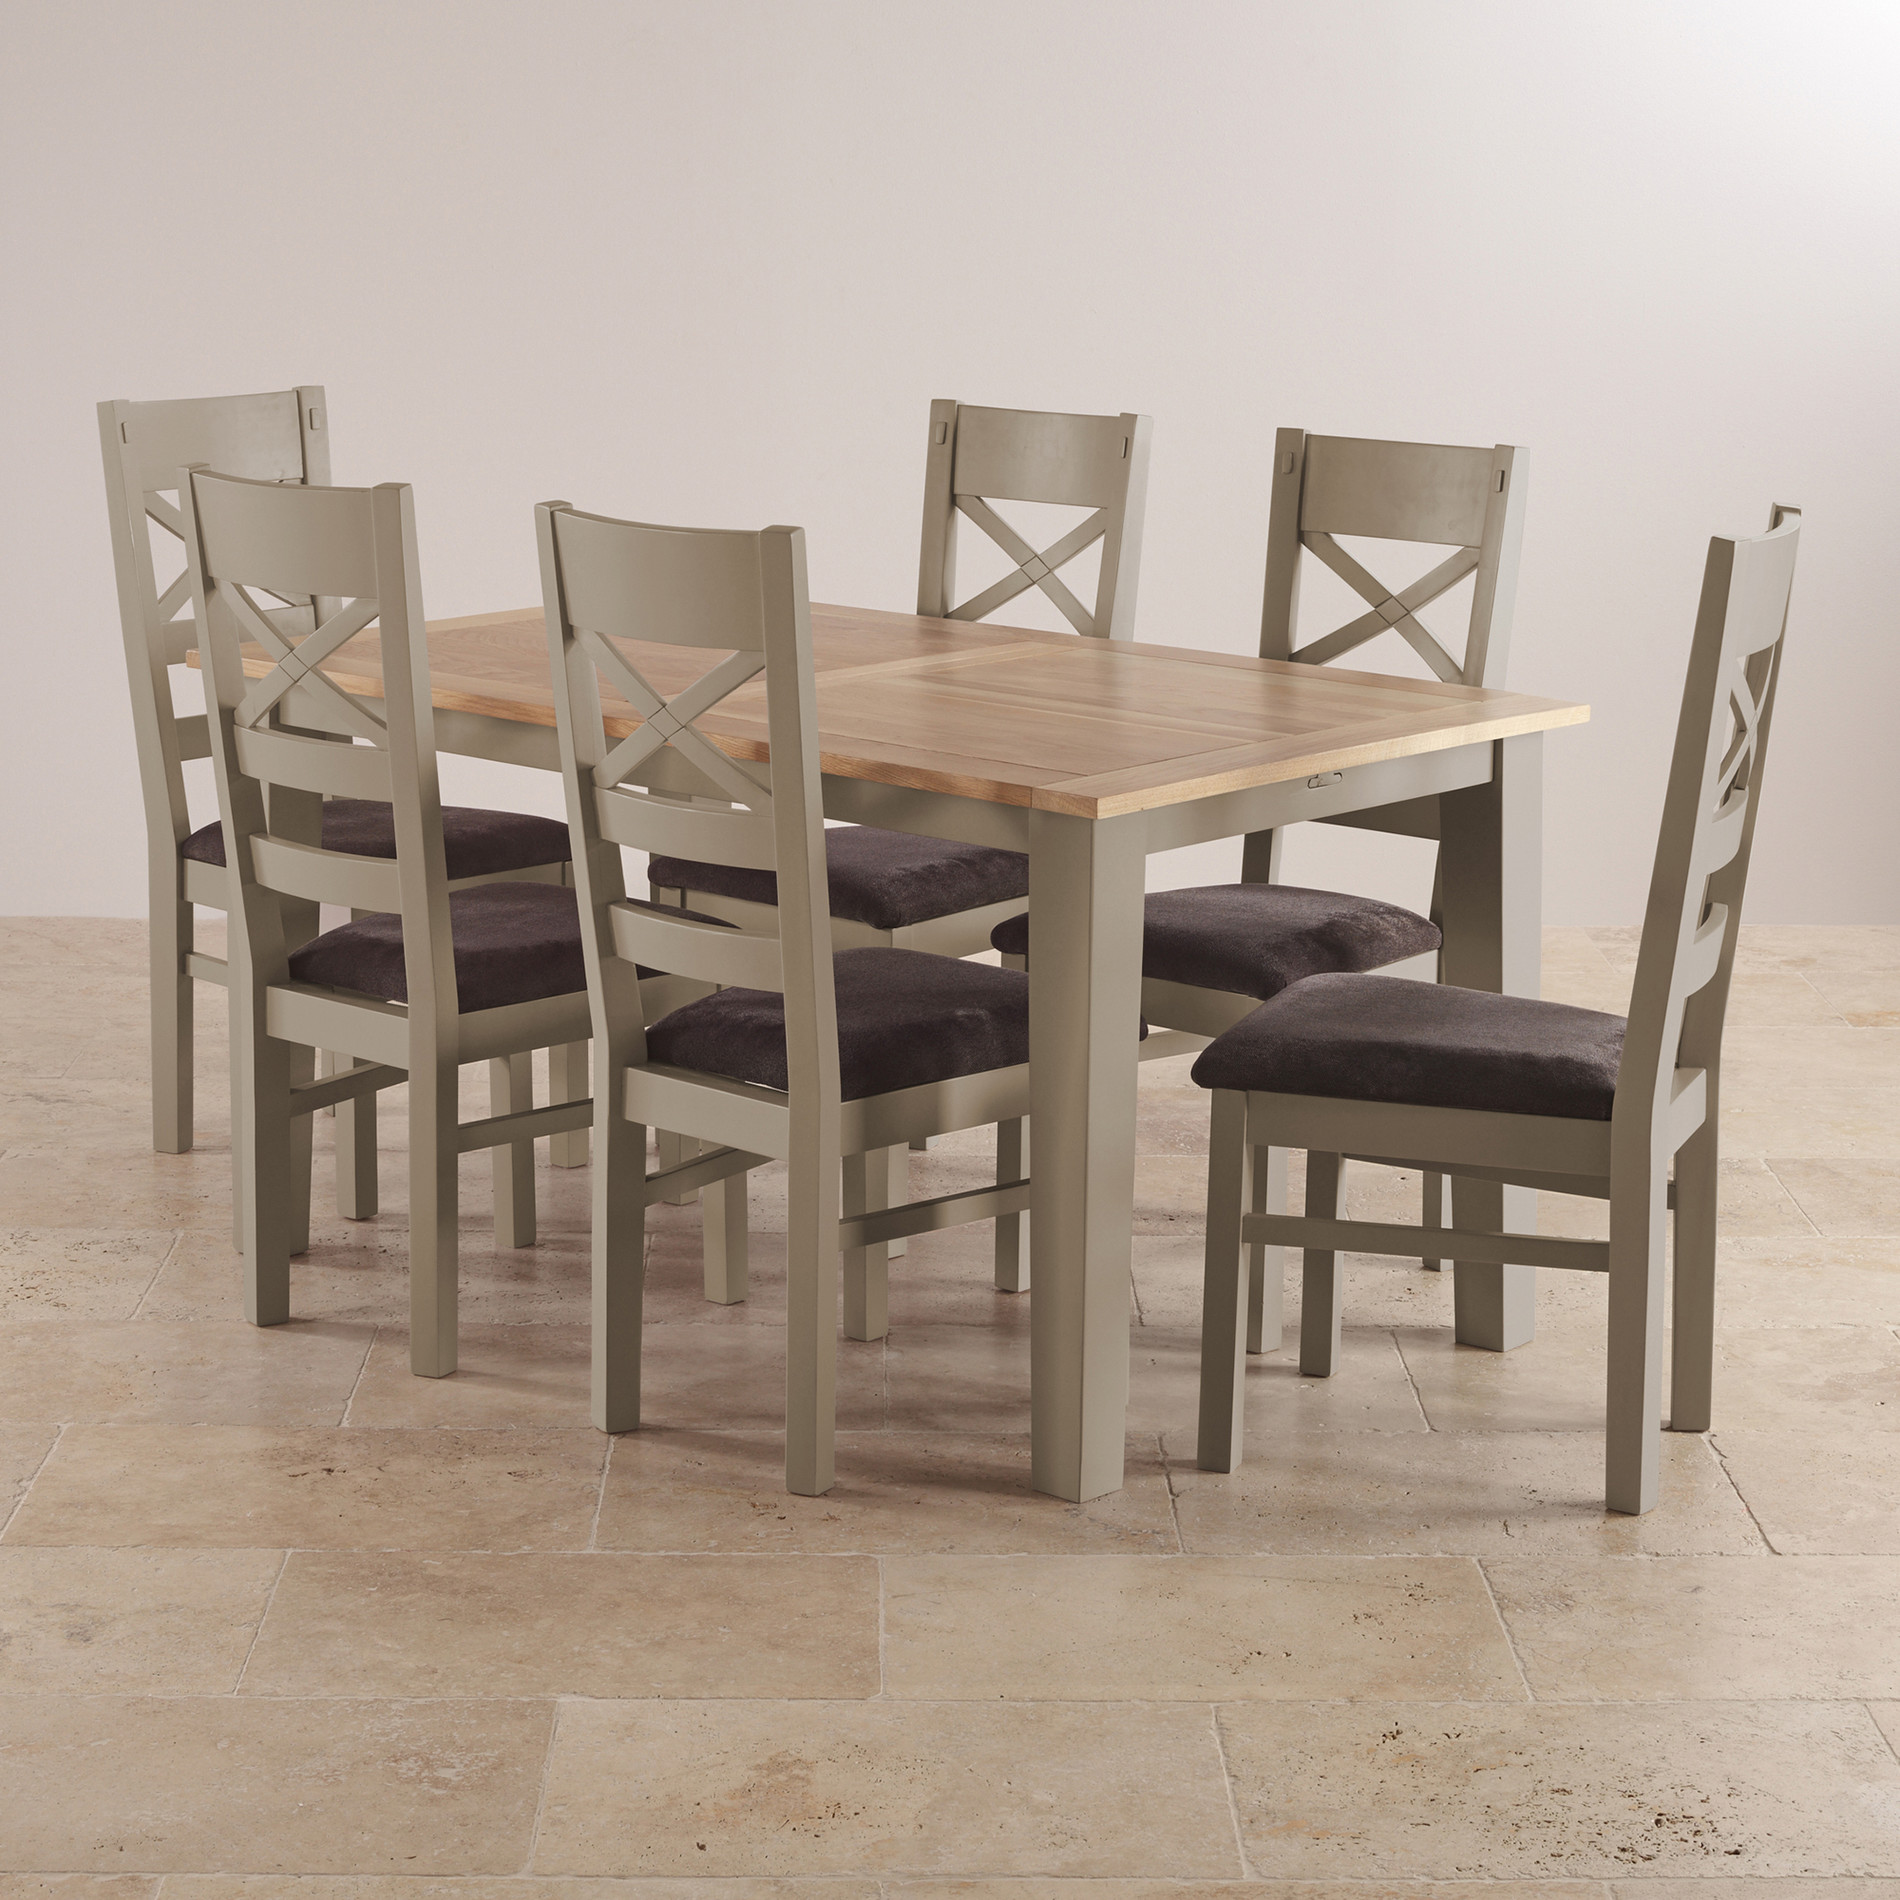 Extending Dining Tables Flexibility is Key Oak Furniture Land